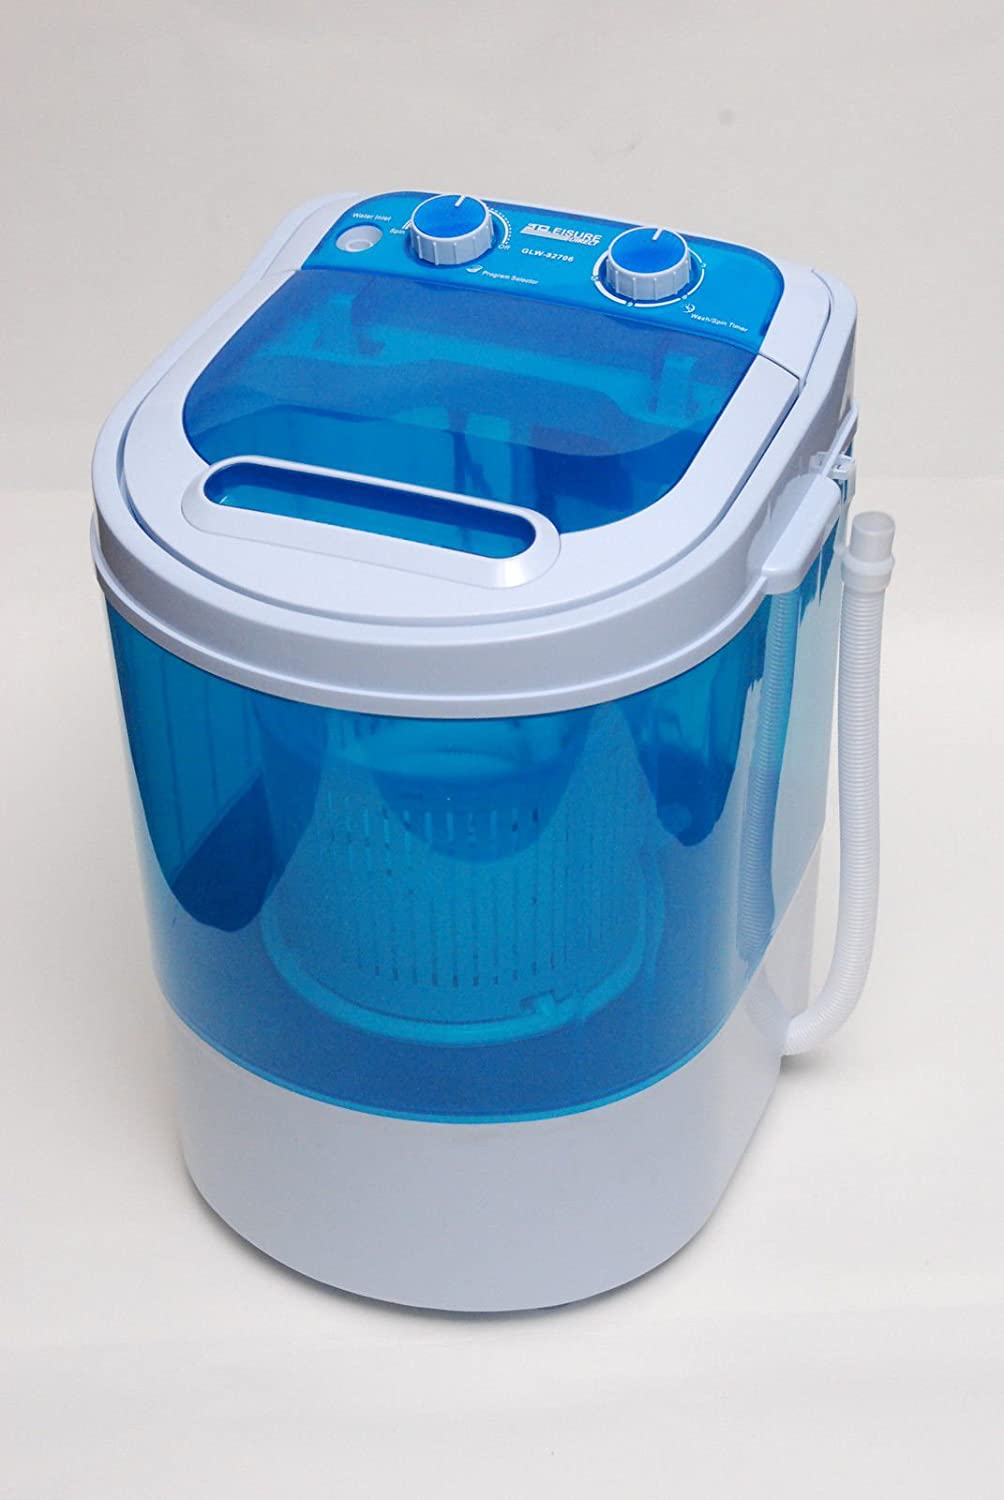 Mini Washing Machines Mini Portable Washing Machine 644 Ideal For Caravans Flats